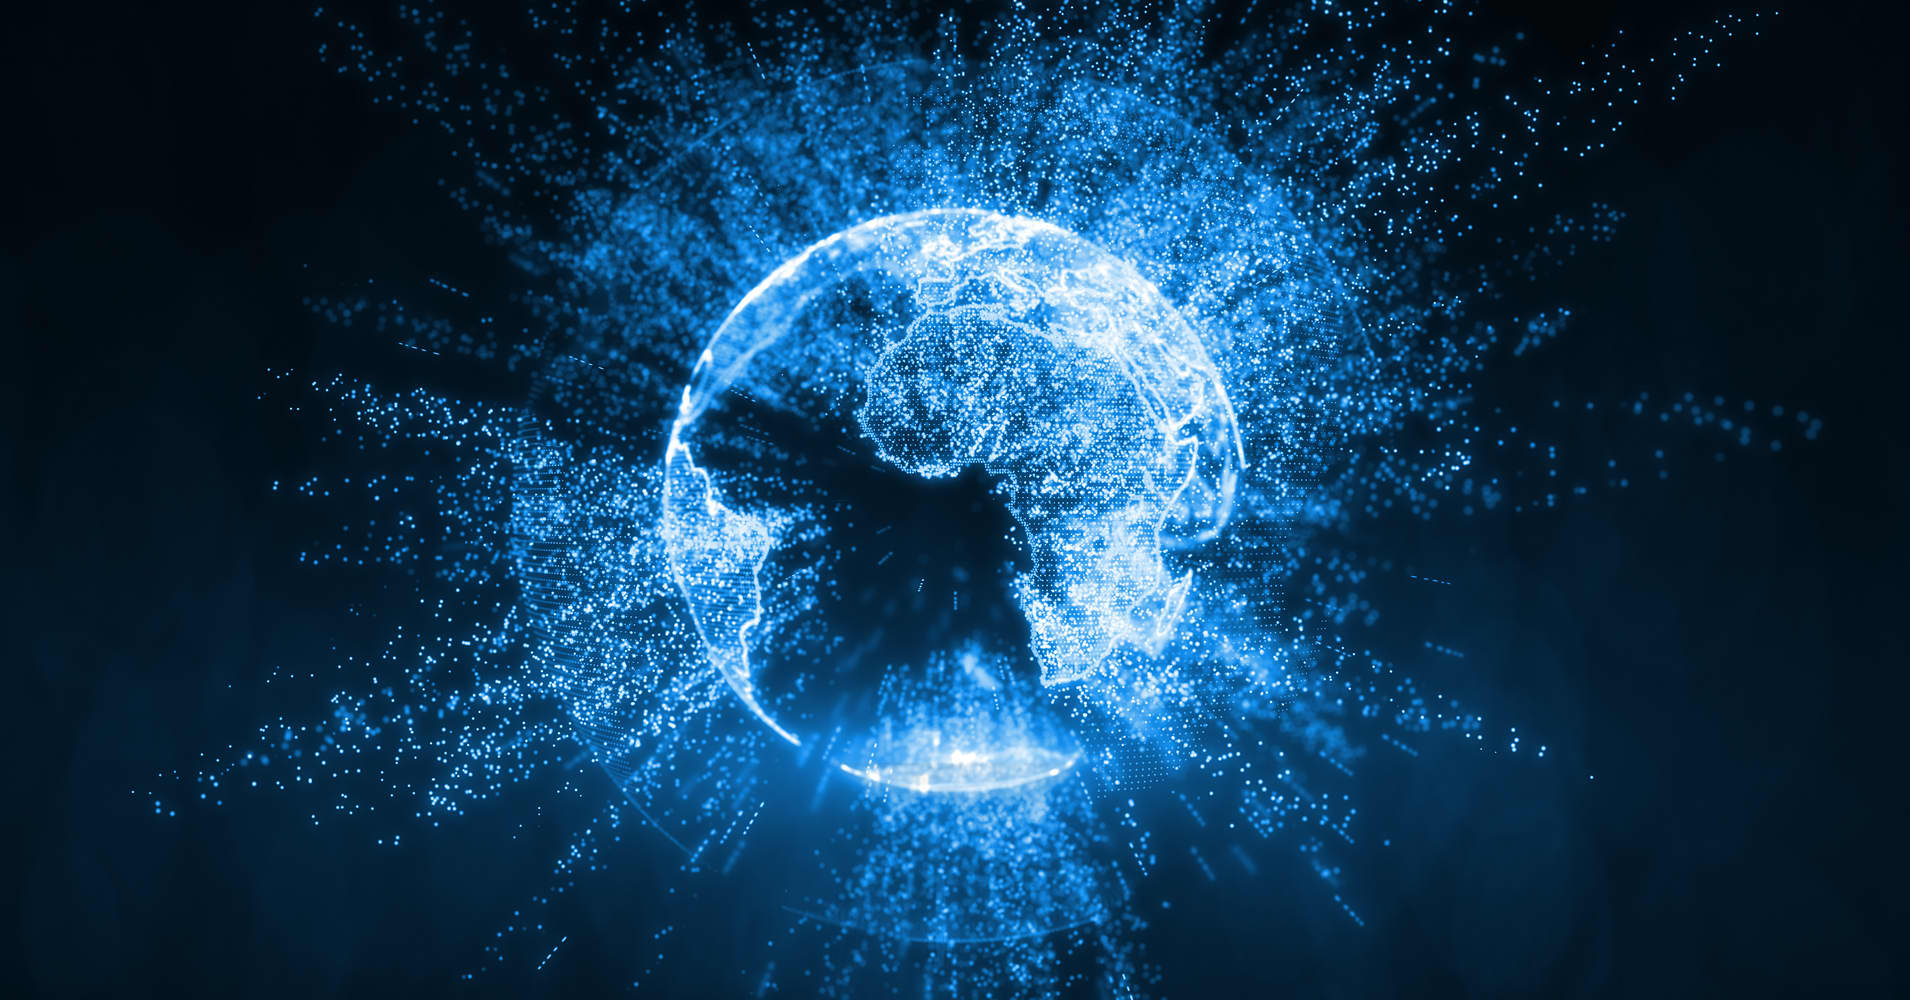 Embrace digital or risk losing out speeding up digital transformation is a priority for today's enterprise